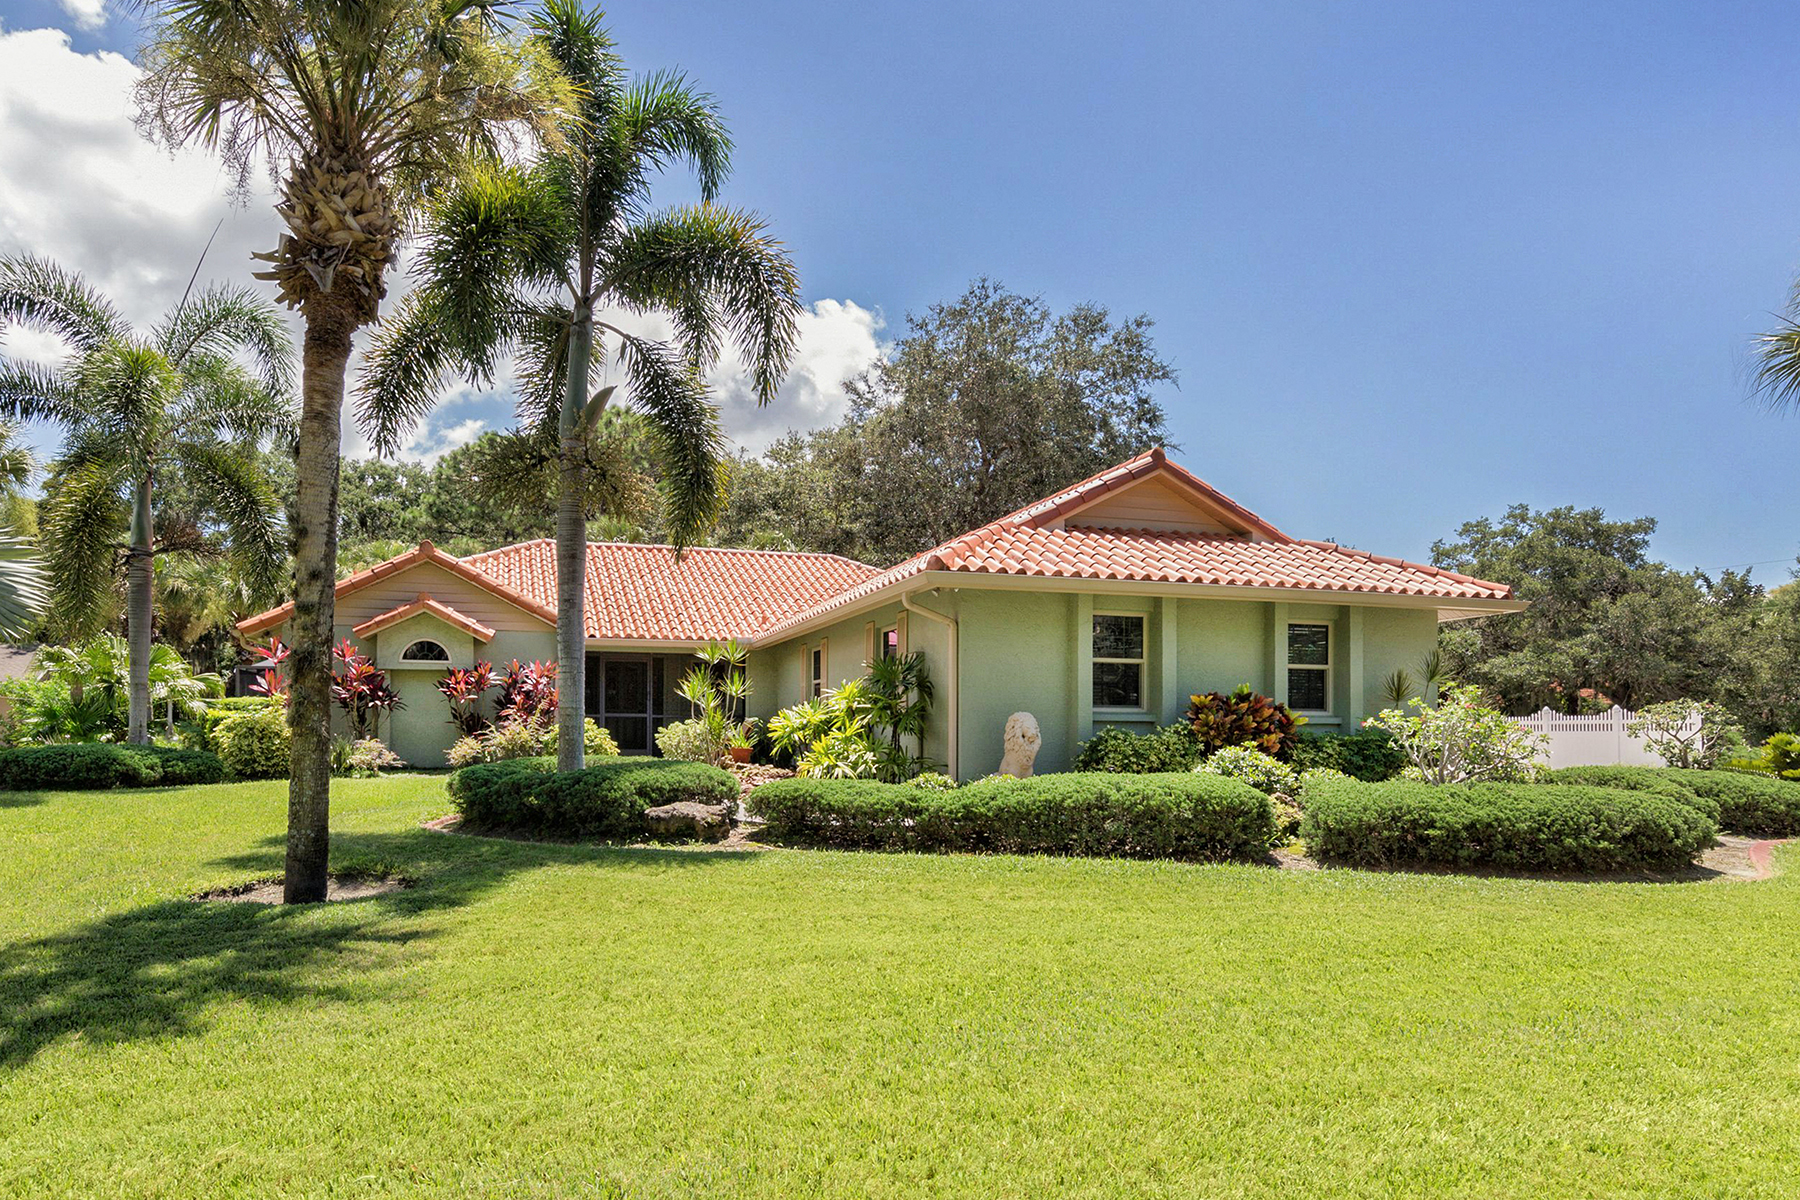 Casa Unifamiliar por un Venta en PINTO ESTATES - MISSION VALLEY 845 Pinto Cir, Nokomis, Florida, 34275 Estados Unidos